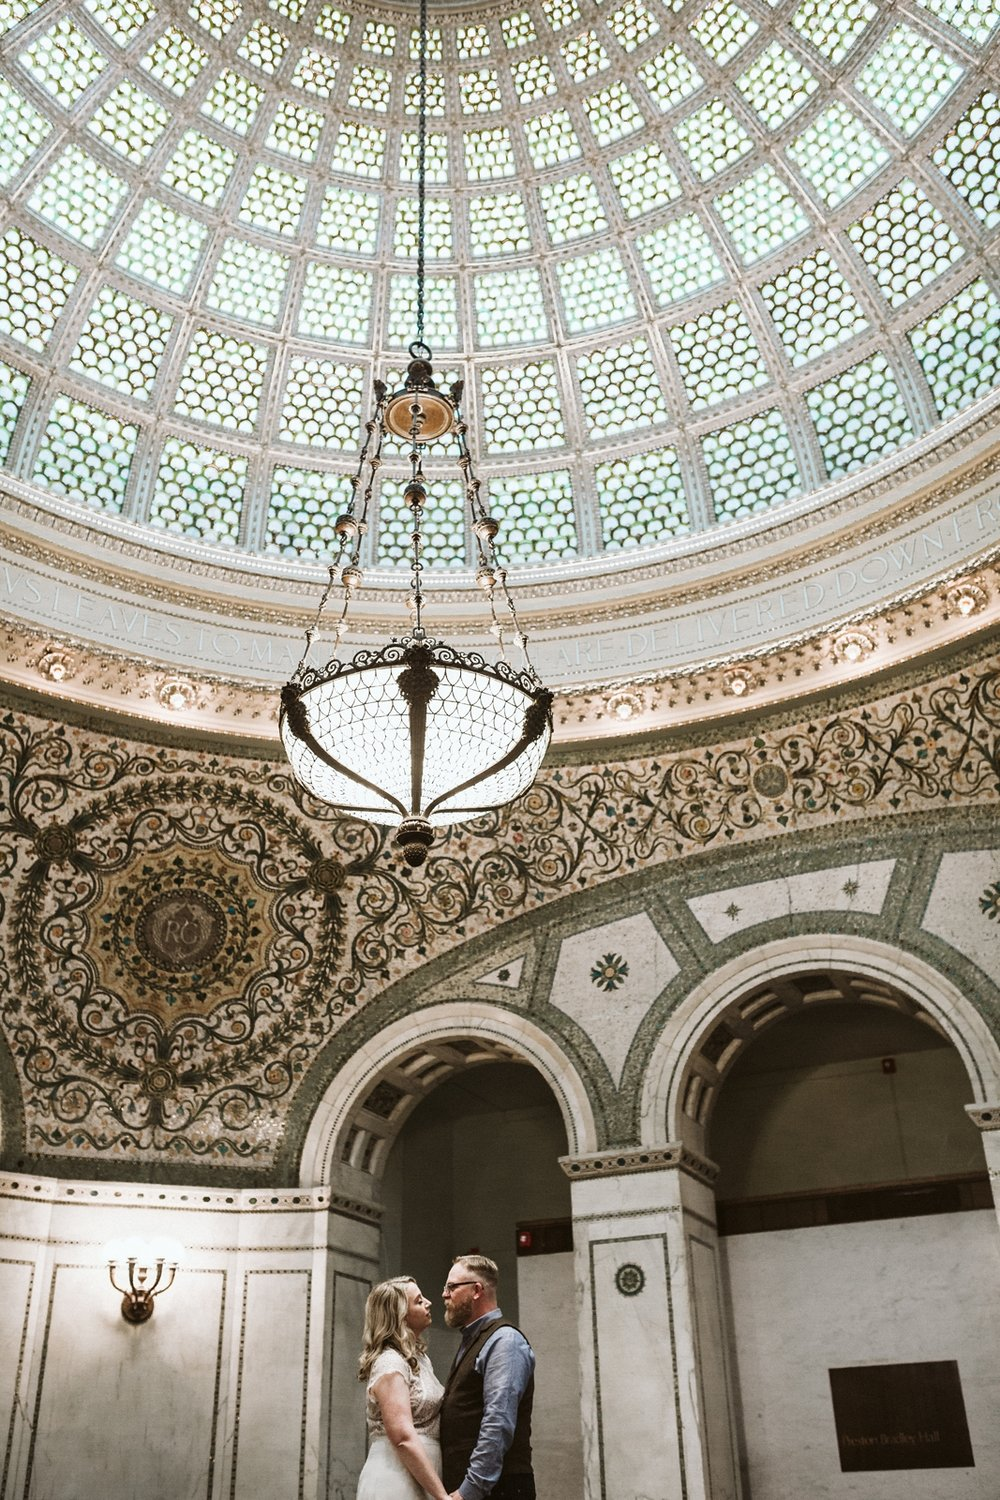 Tiffany dome | small wedding | lisa kathan photography